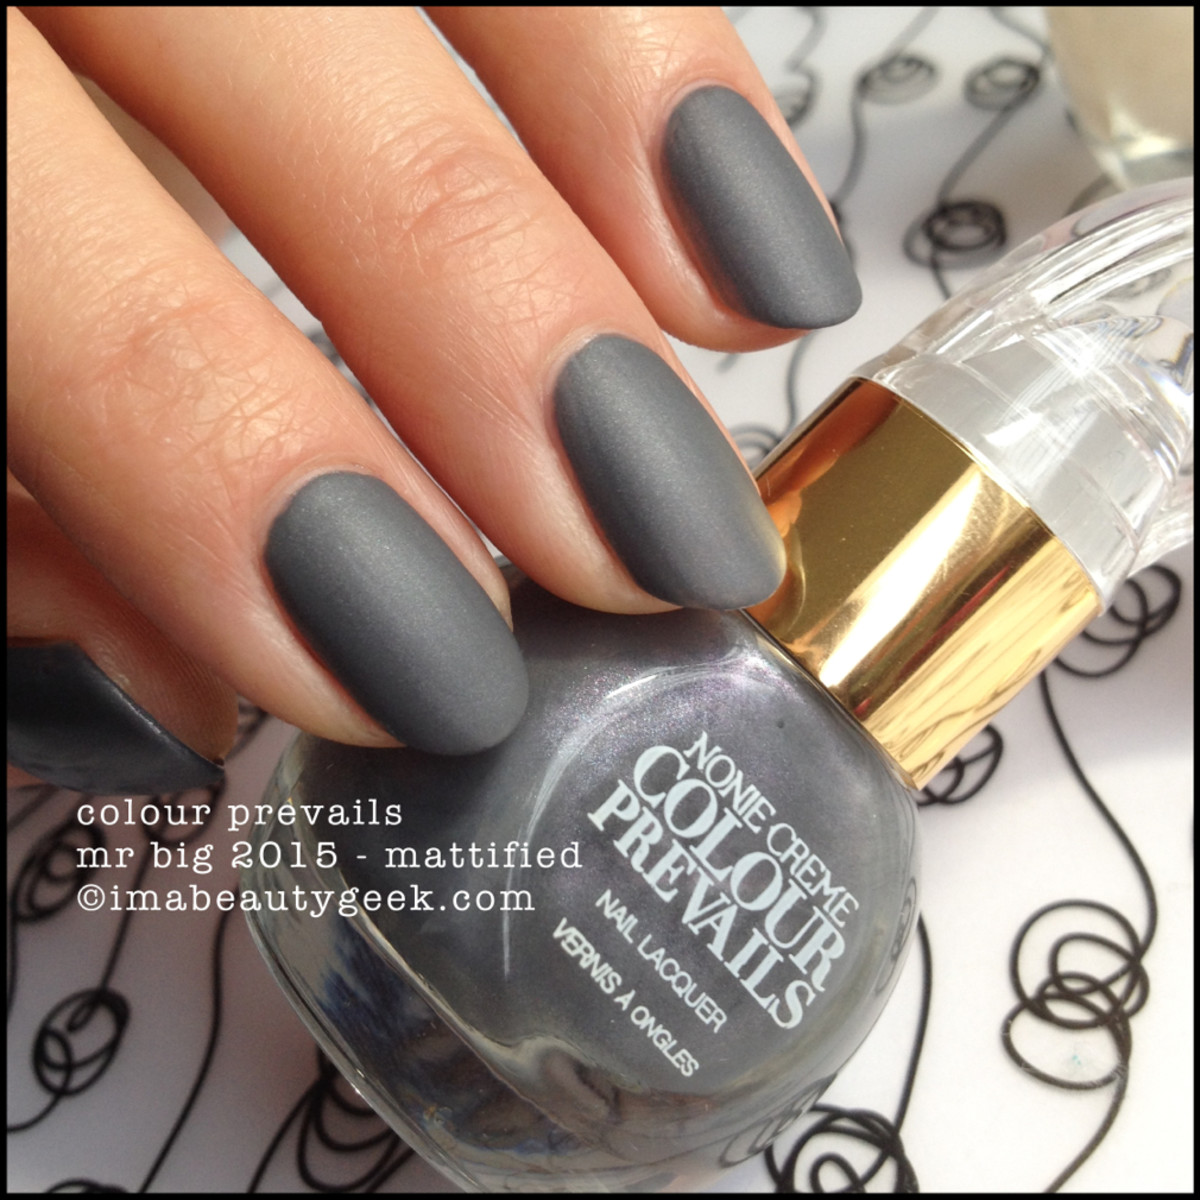 Colour Prevails Mr Big Mattified Nail Lacquer by Nonie Creme